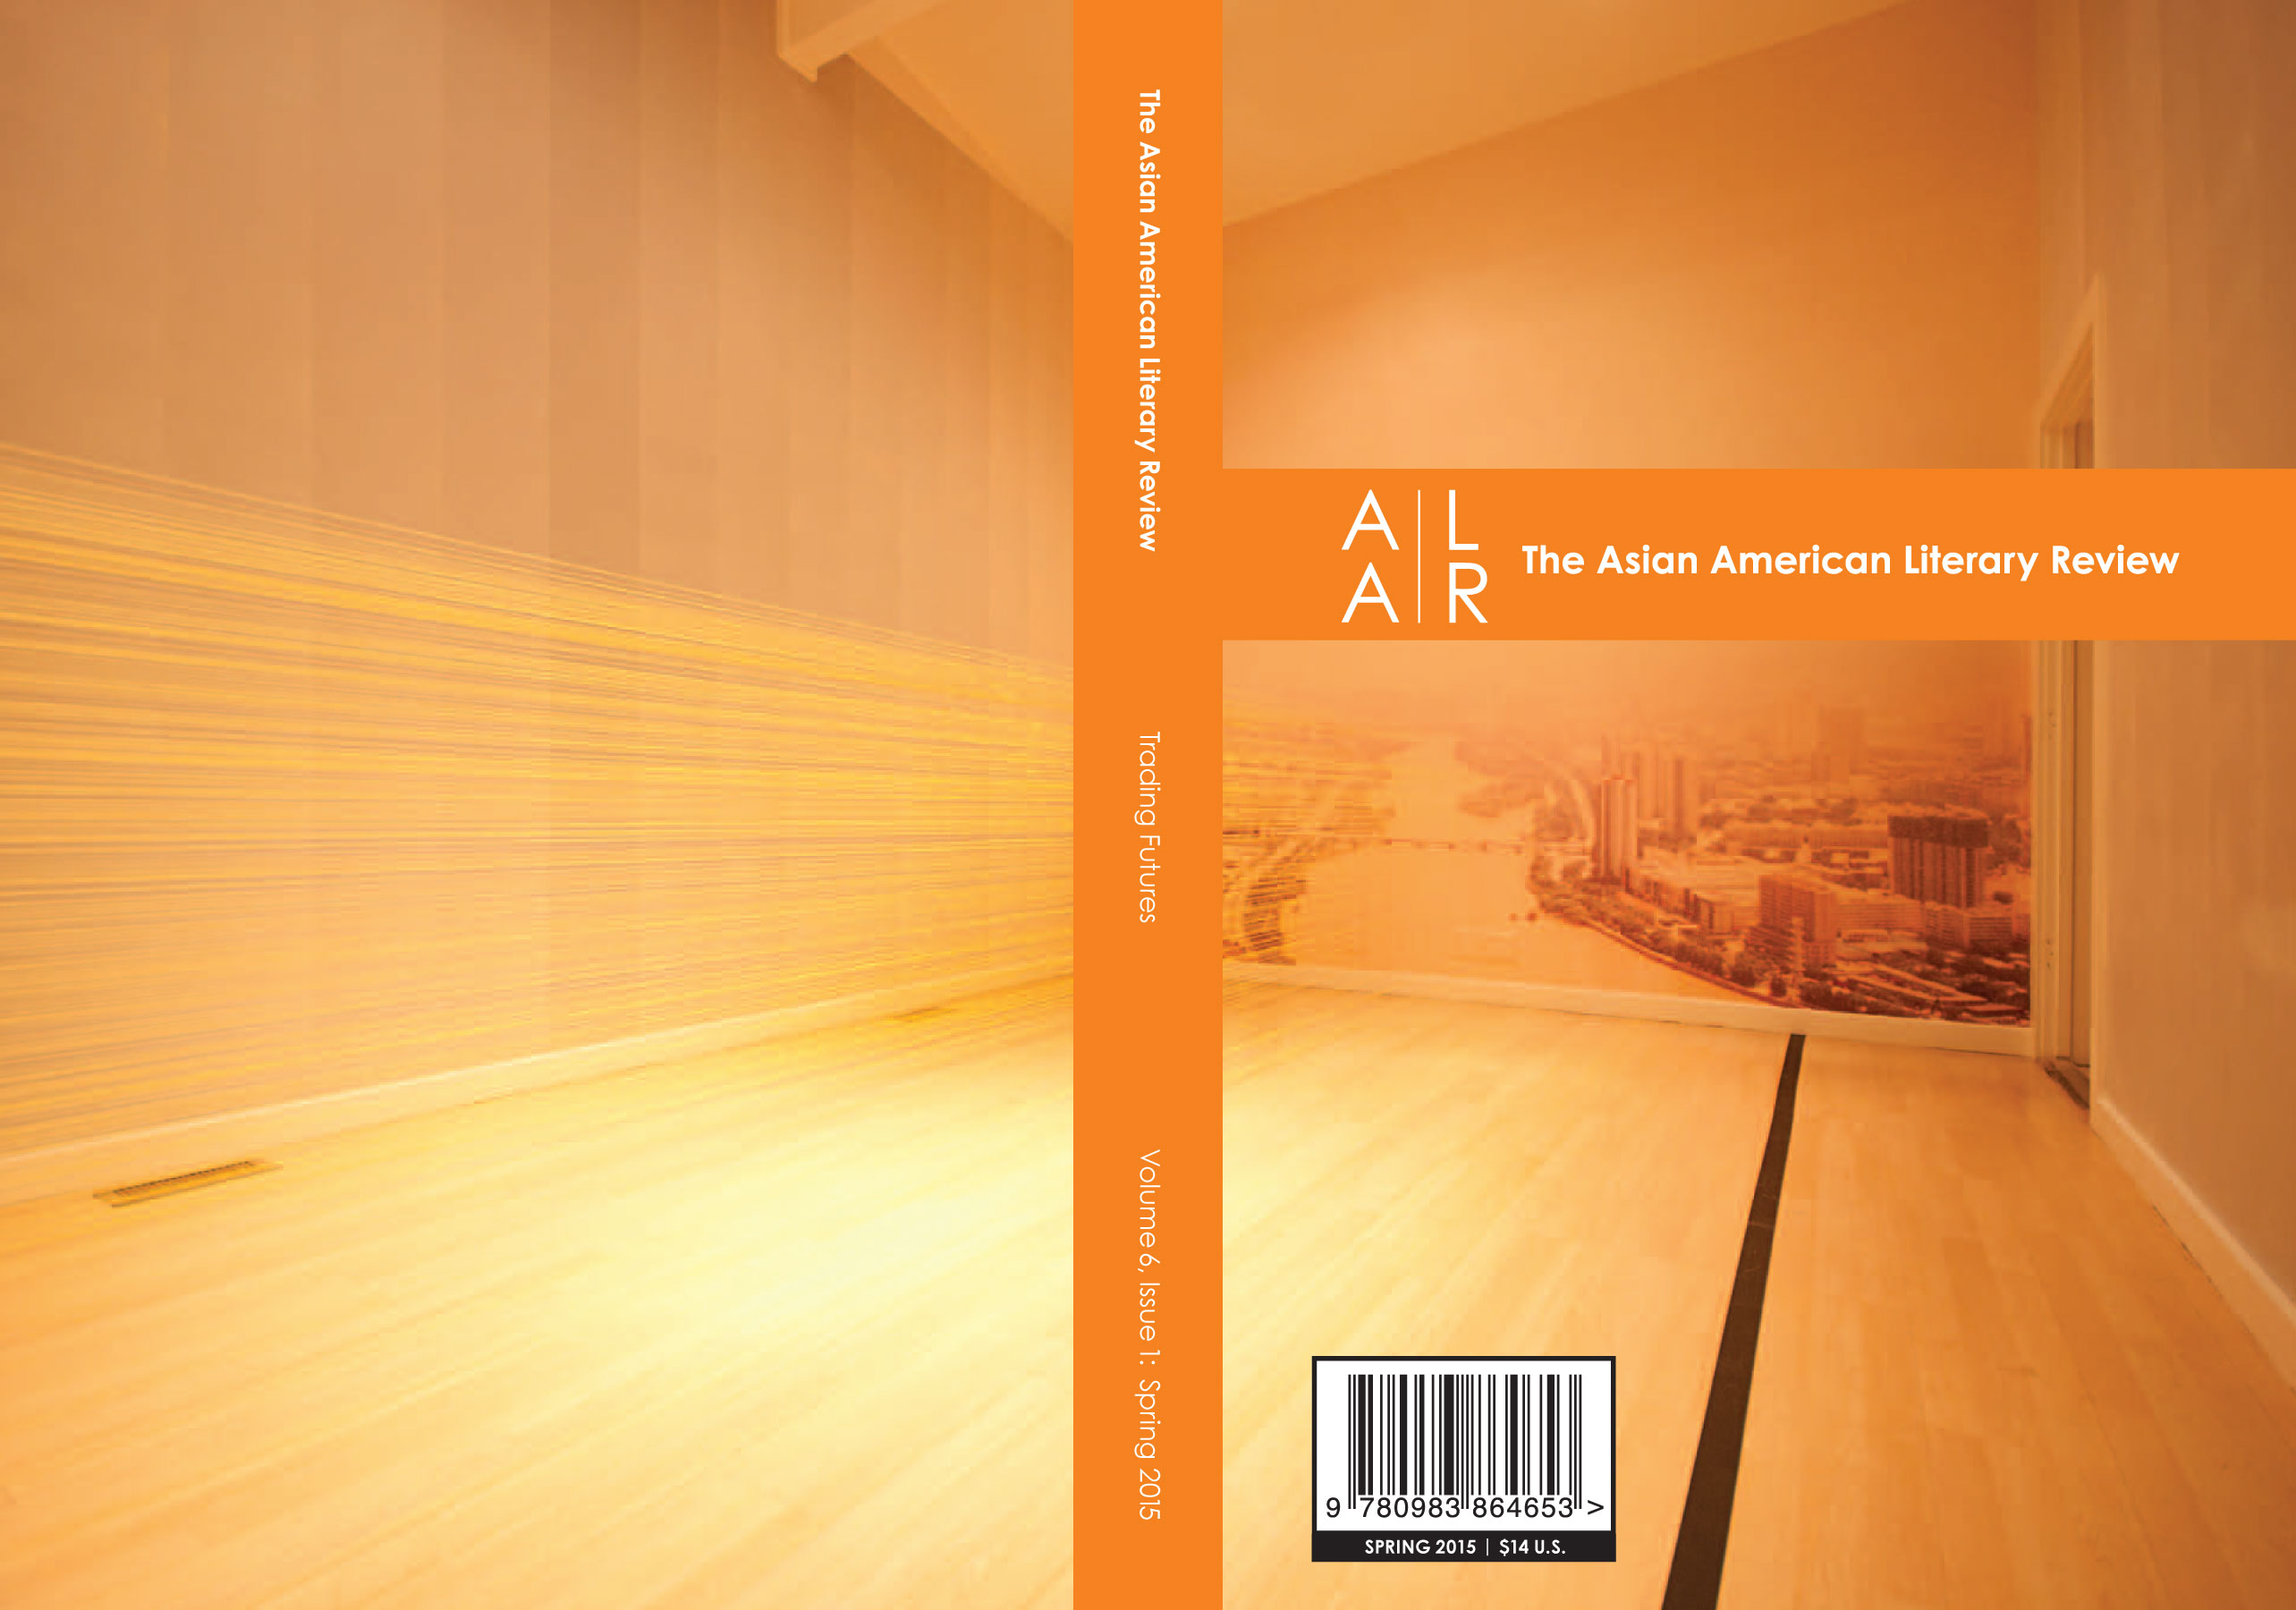 AALR_v6i1-Spring2015-COVER_back-spine-front